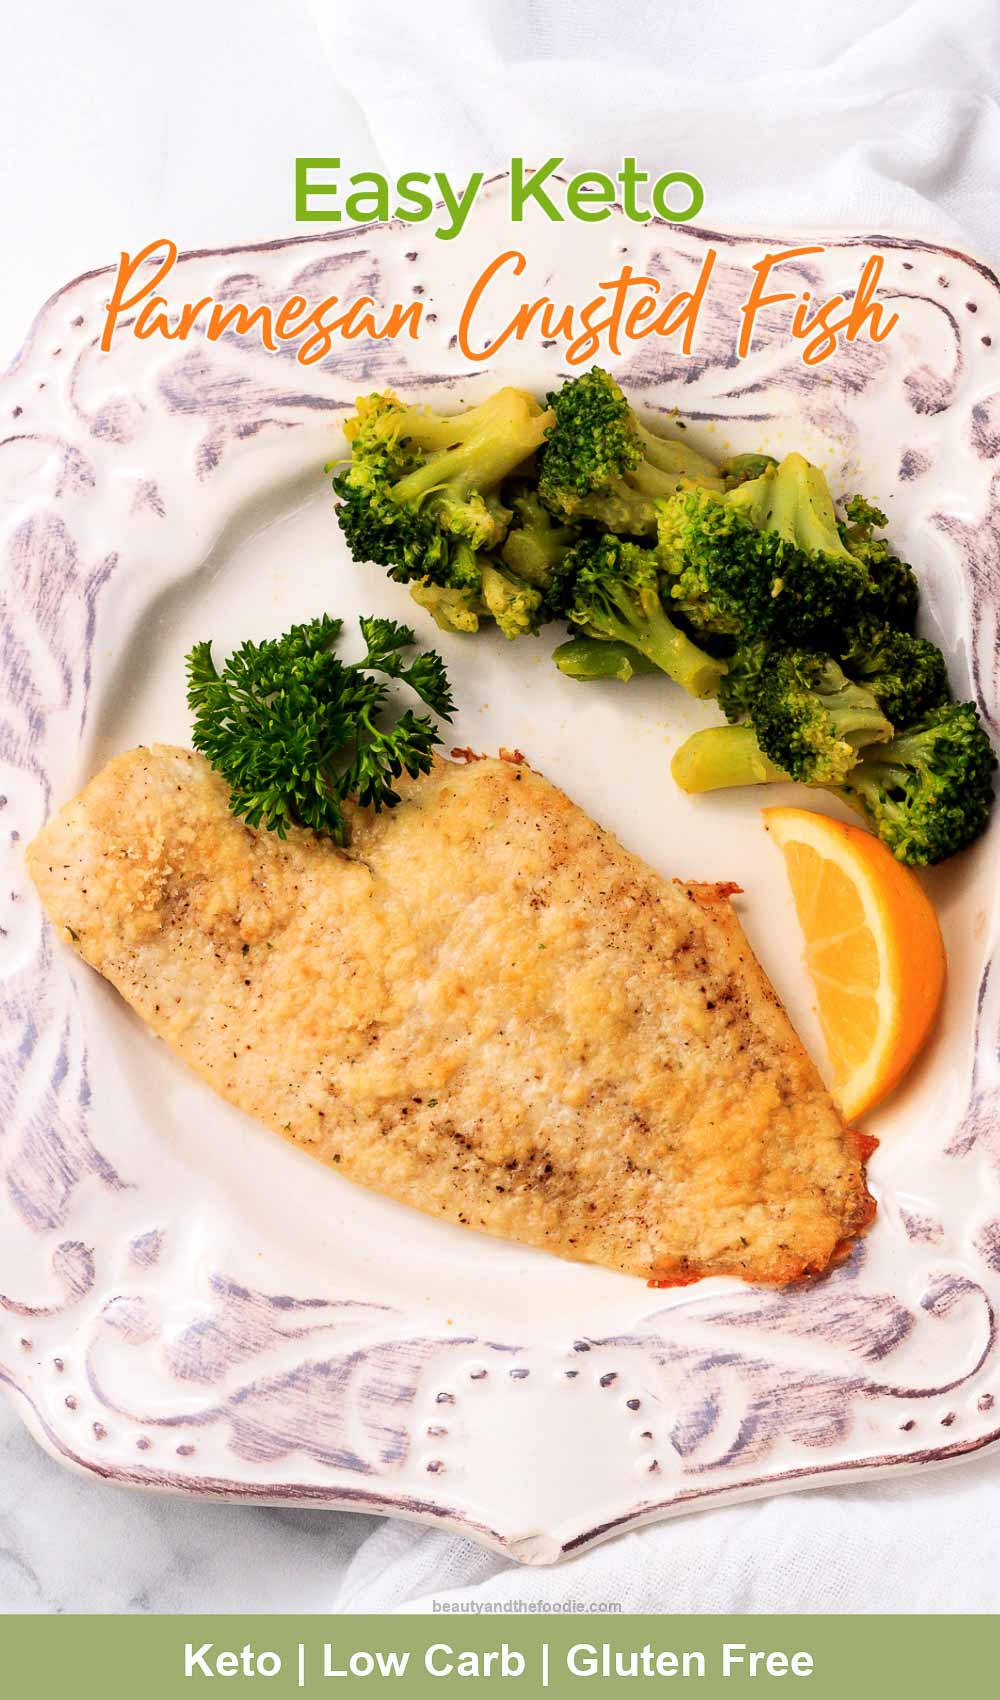 One low carb breaded parmesan cruste flounder fish fillet with broccoli.